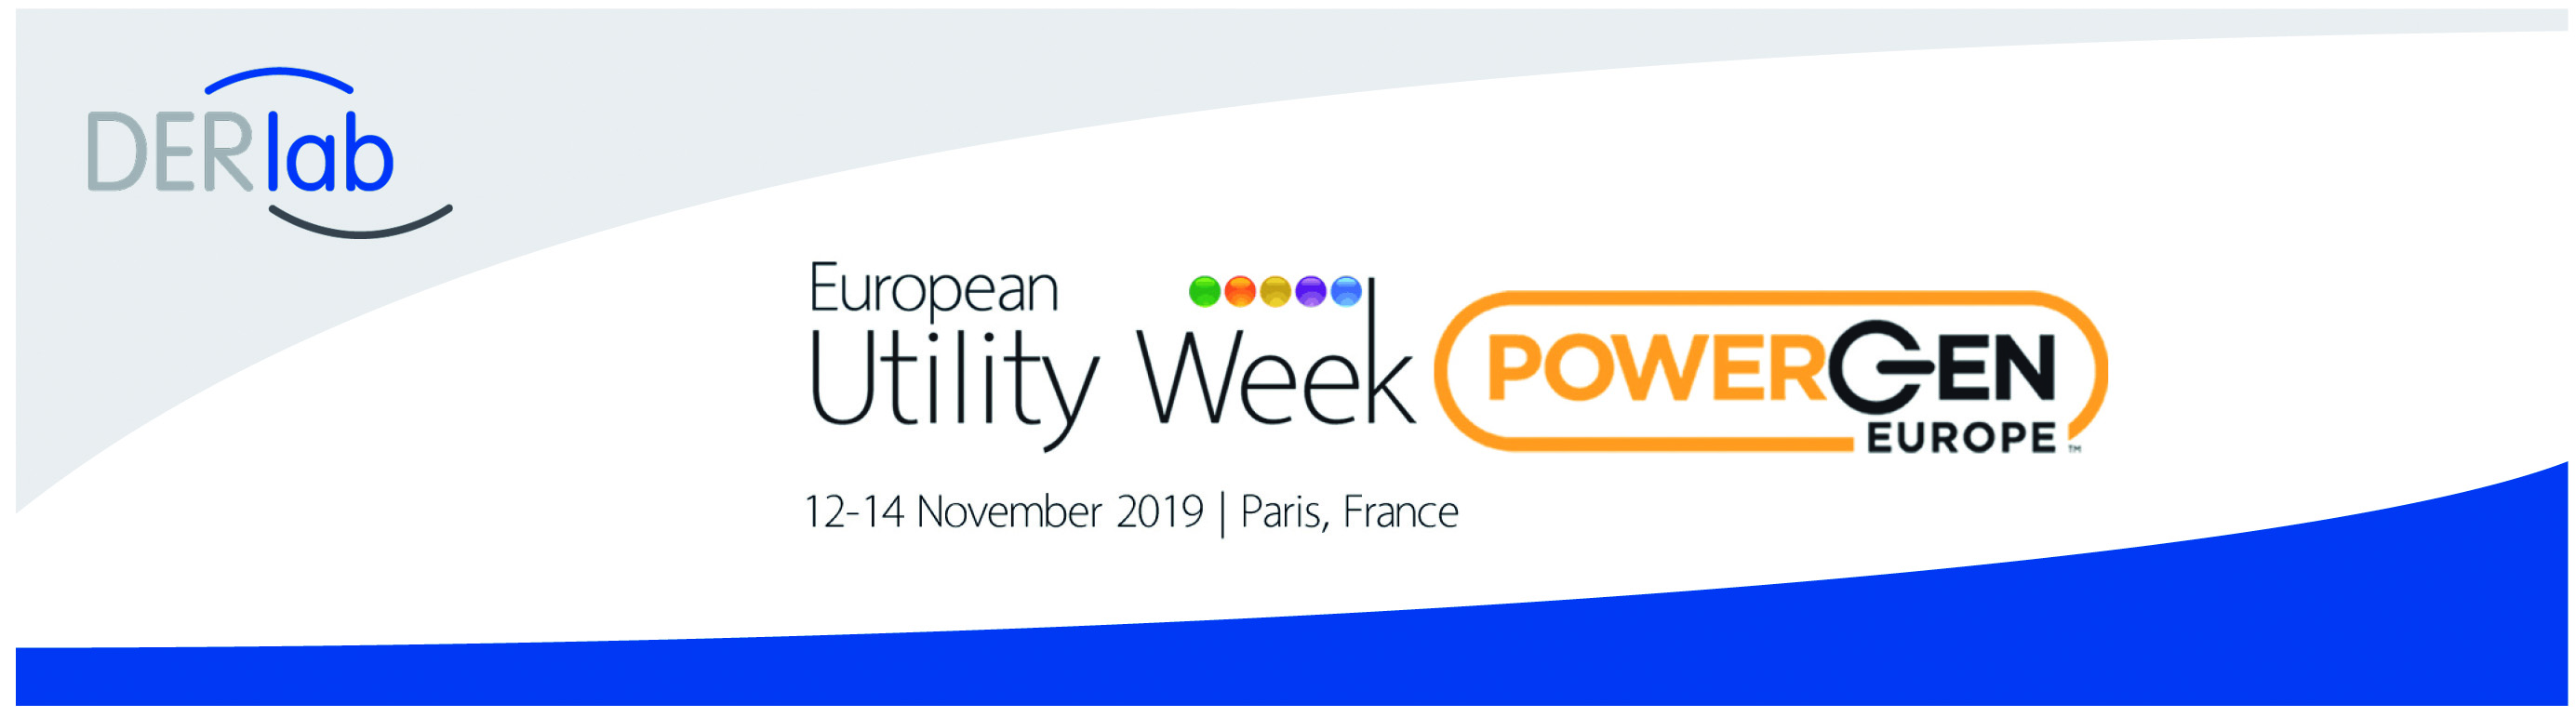 DERlab partners with European Utility Week 2019